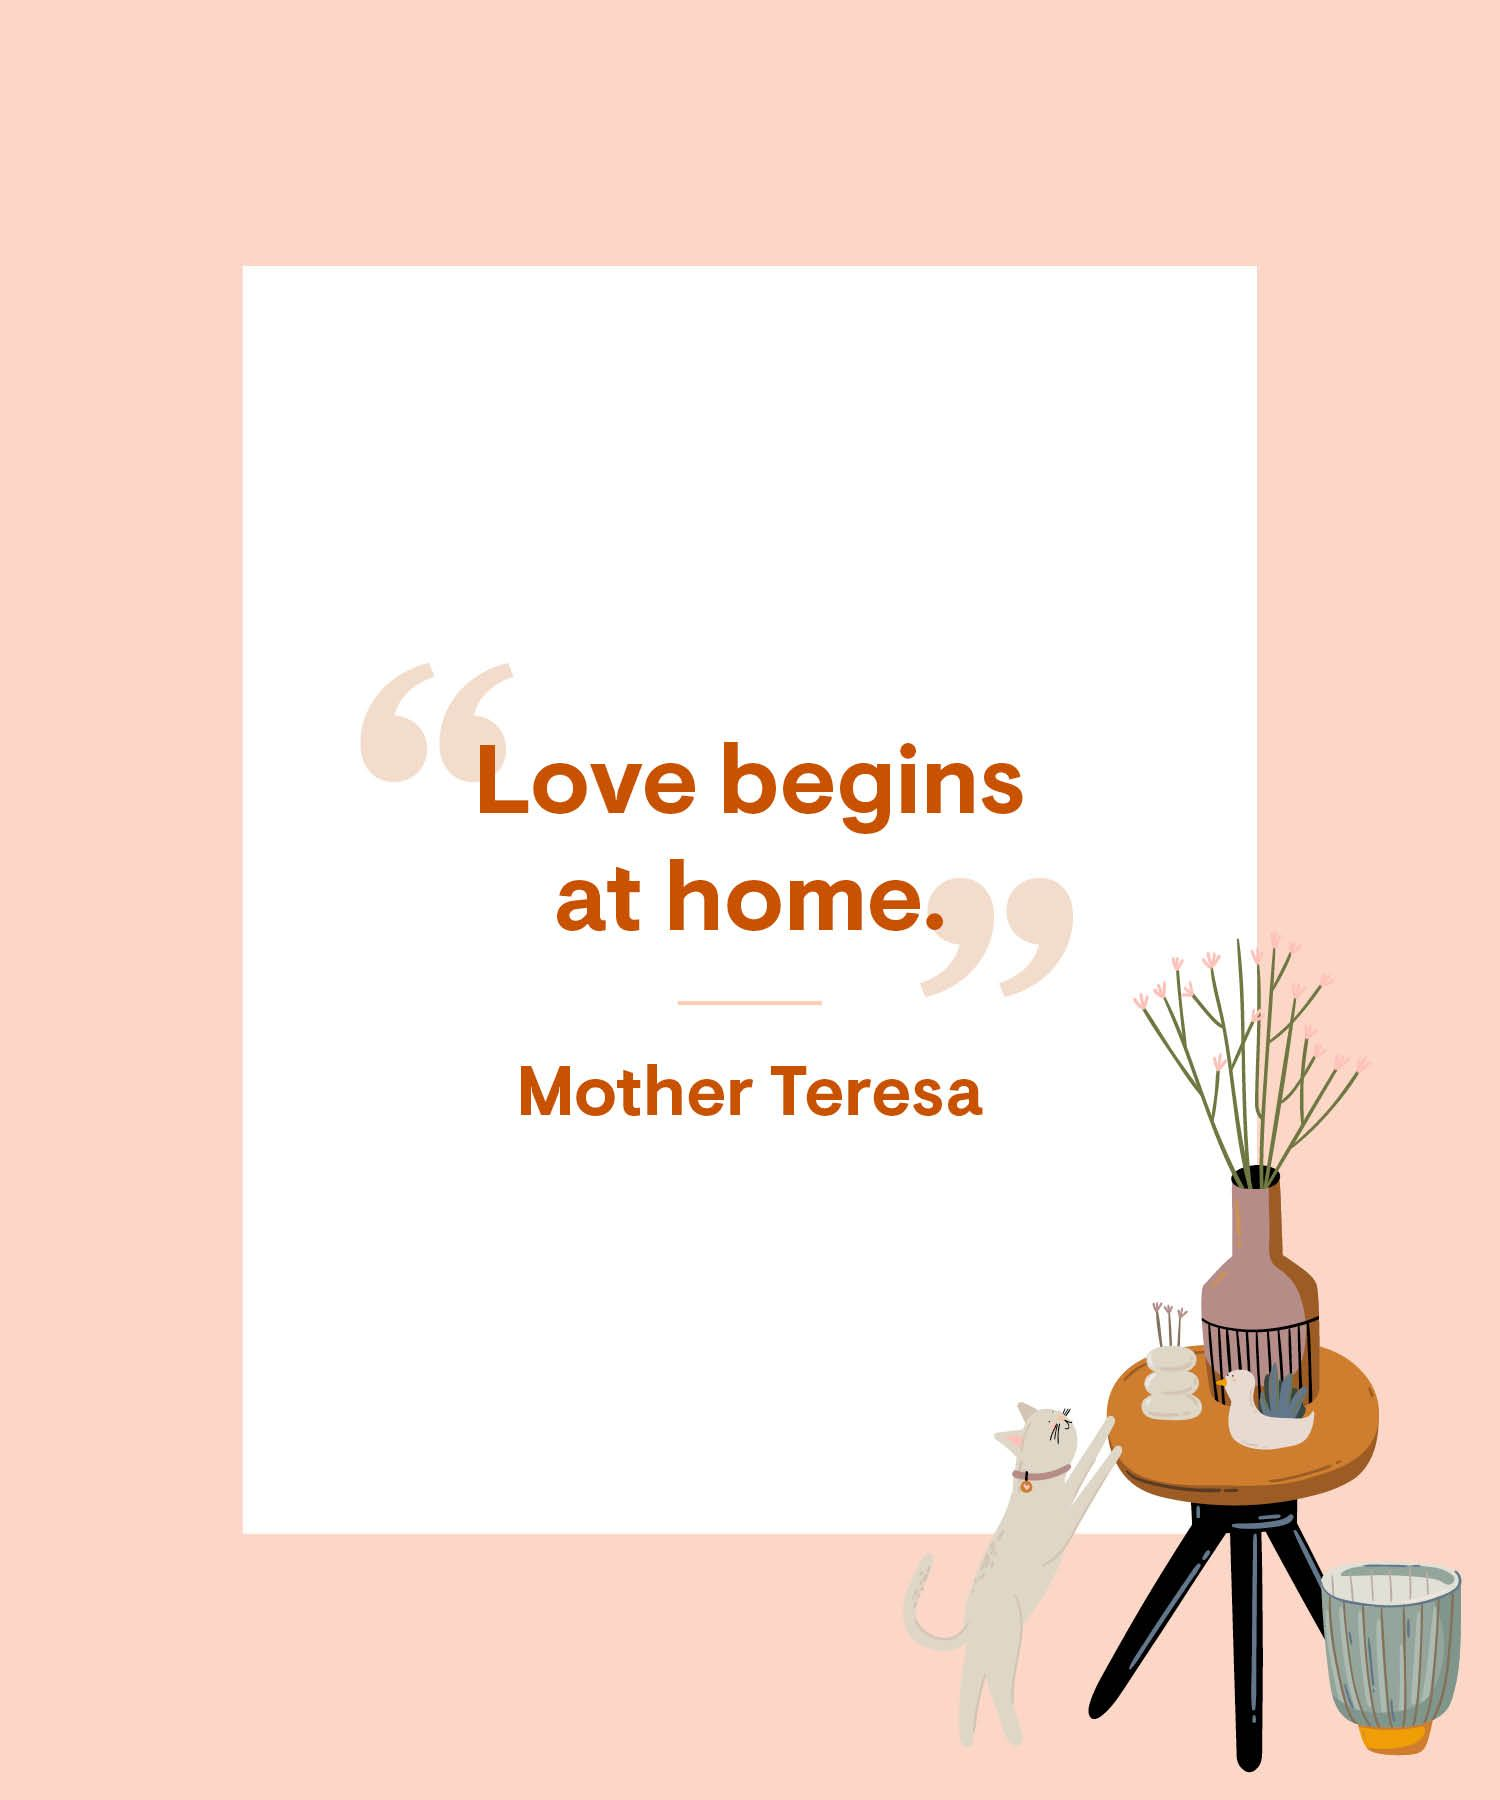 9 Best Home Quotes - Beautiful Sayings About Home Sweet Home